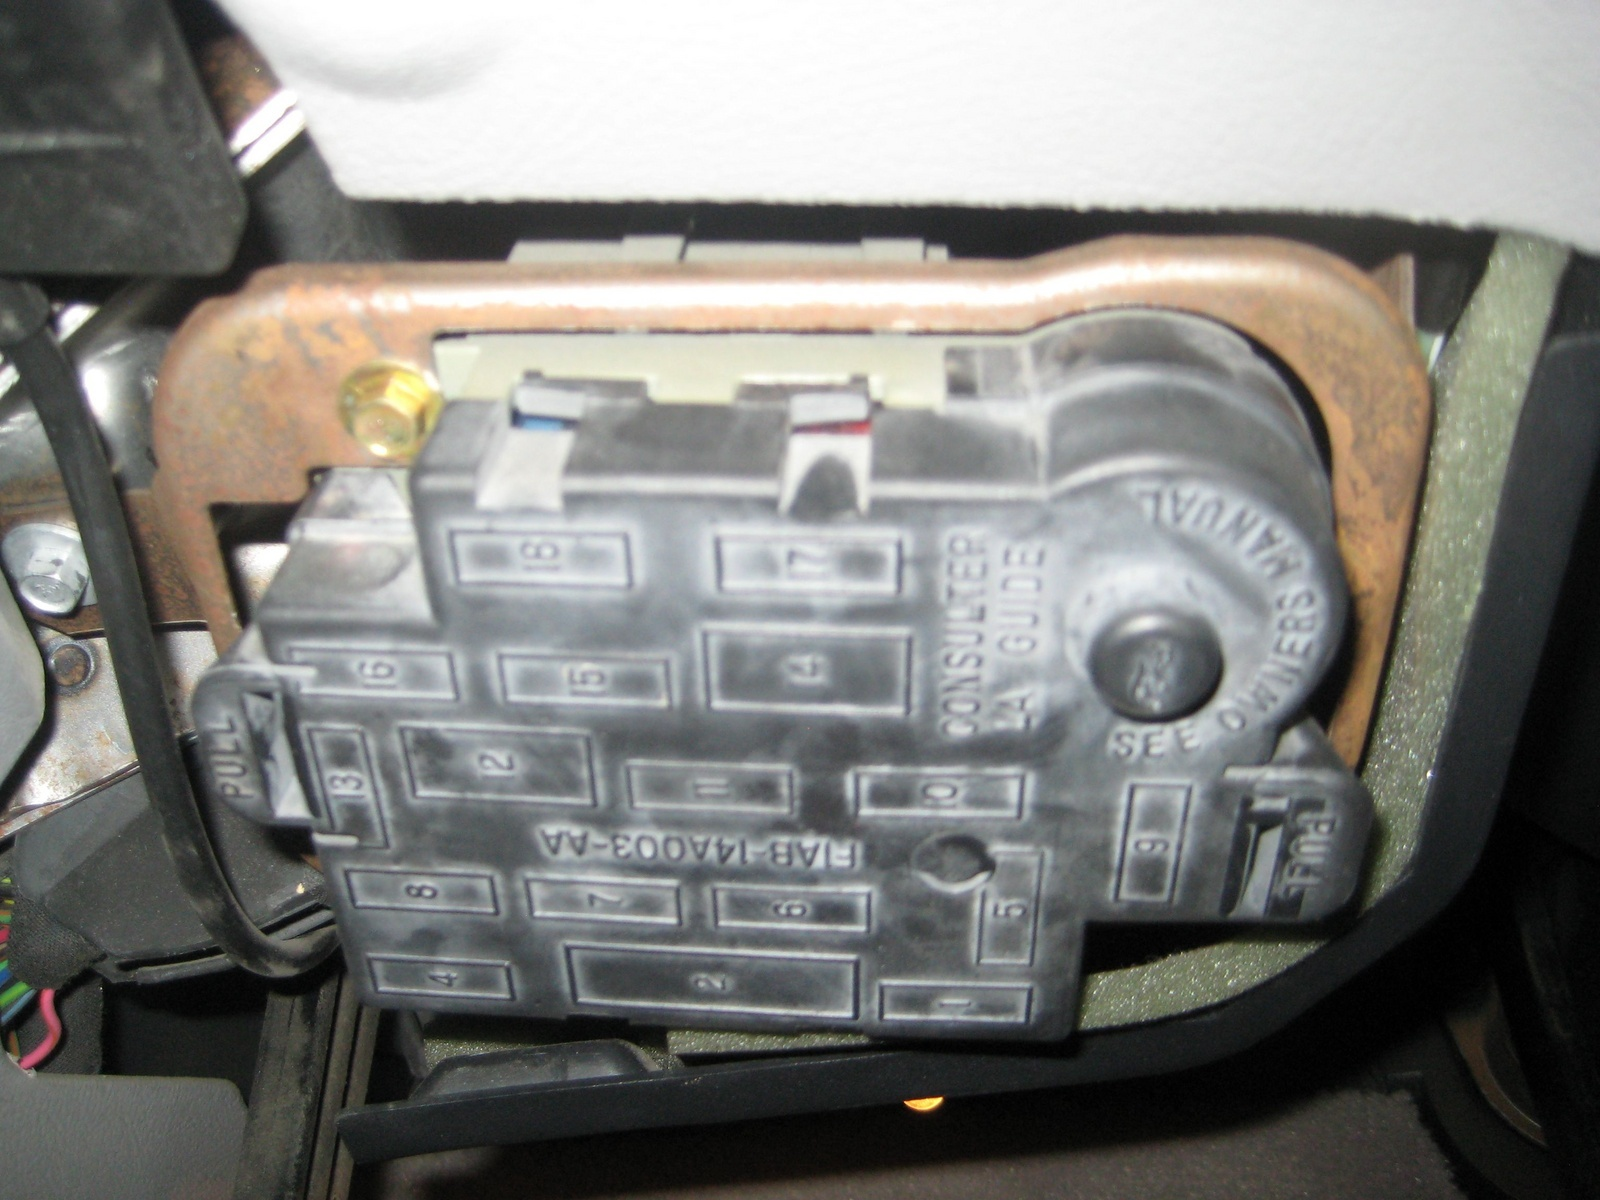 1996 Grand Marquis Fuse Box Electronic Wiring Diagrams 2002 Ford Contour Mercury Questions How Do I Open The Inside